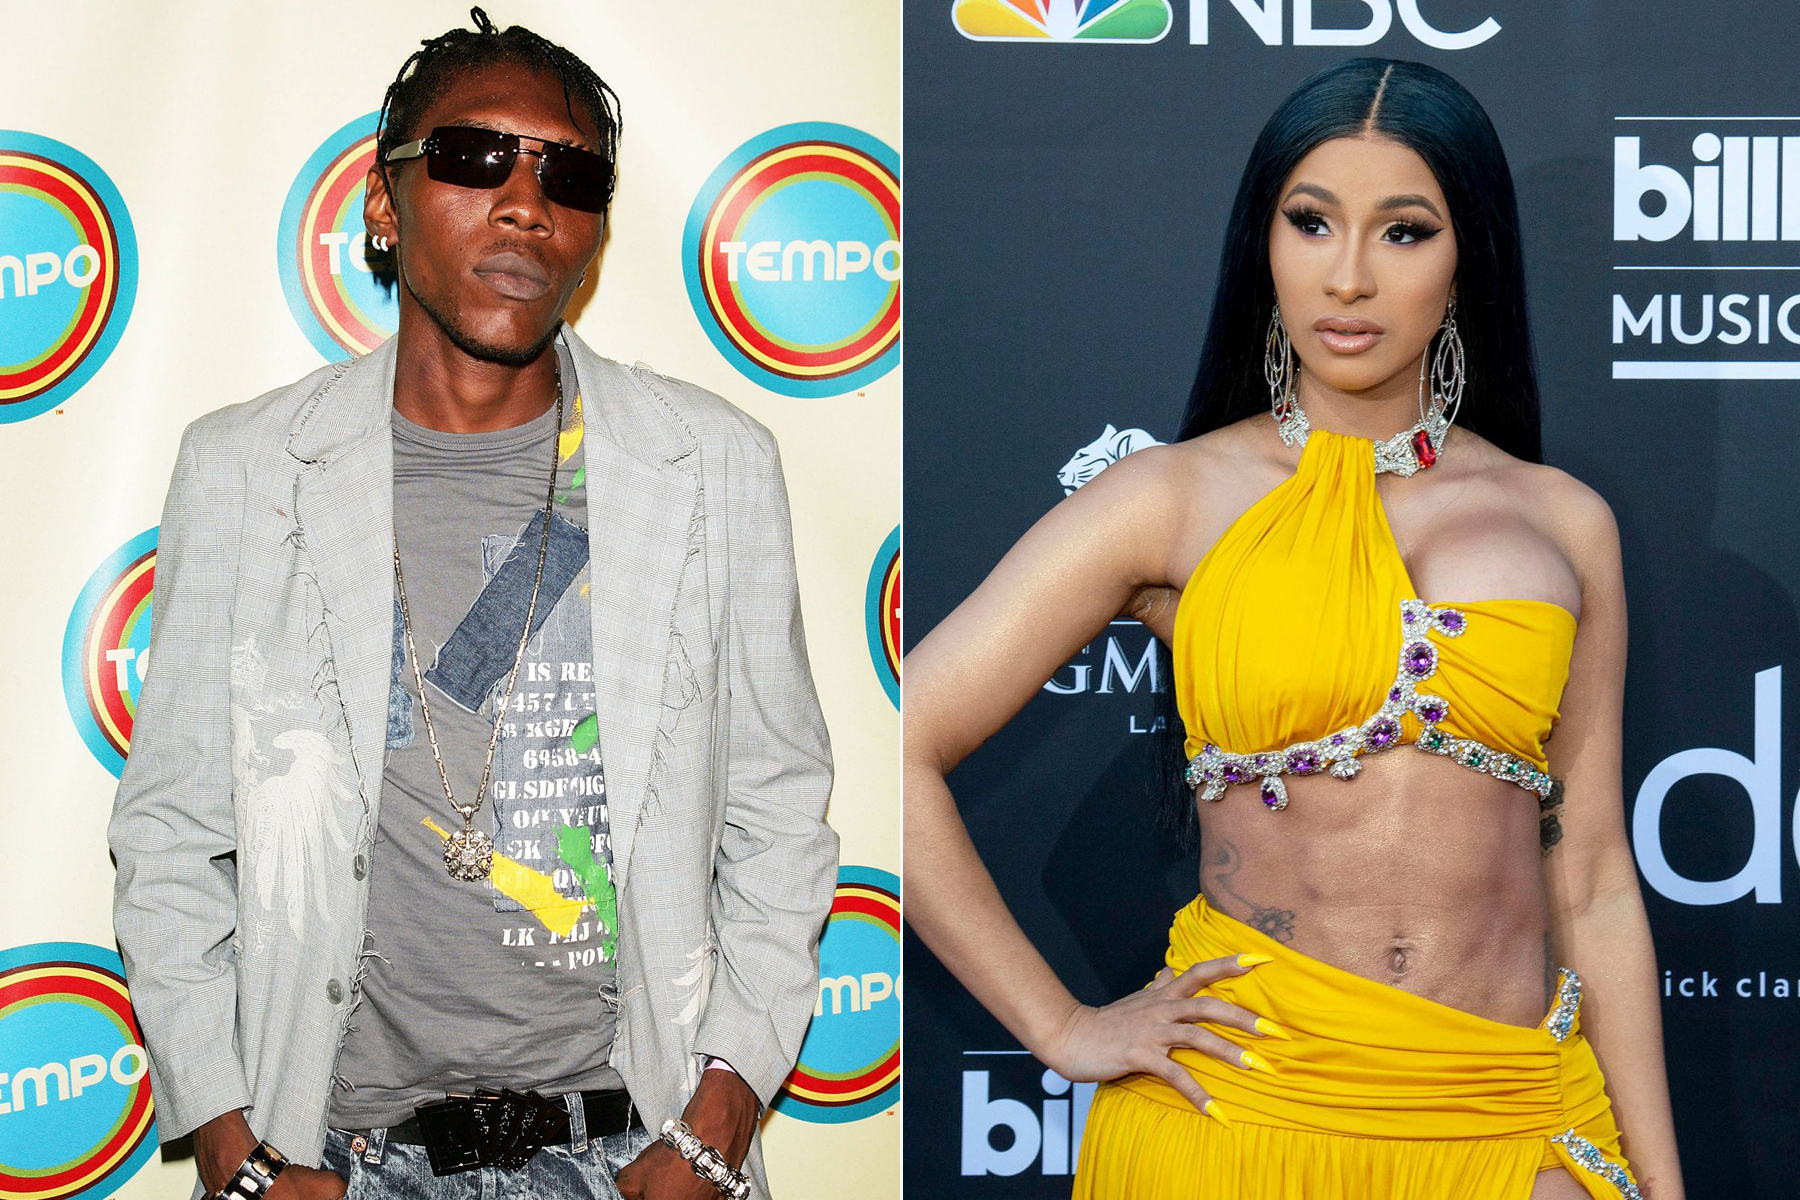 Cardi B Approves Of Vybz Kartel's WAP Remix - DancehallMag